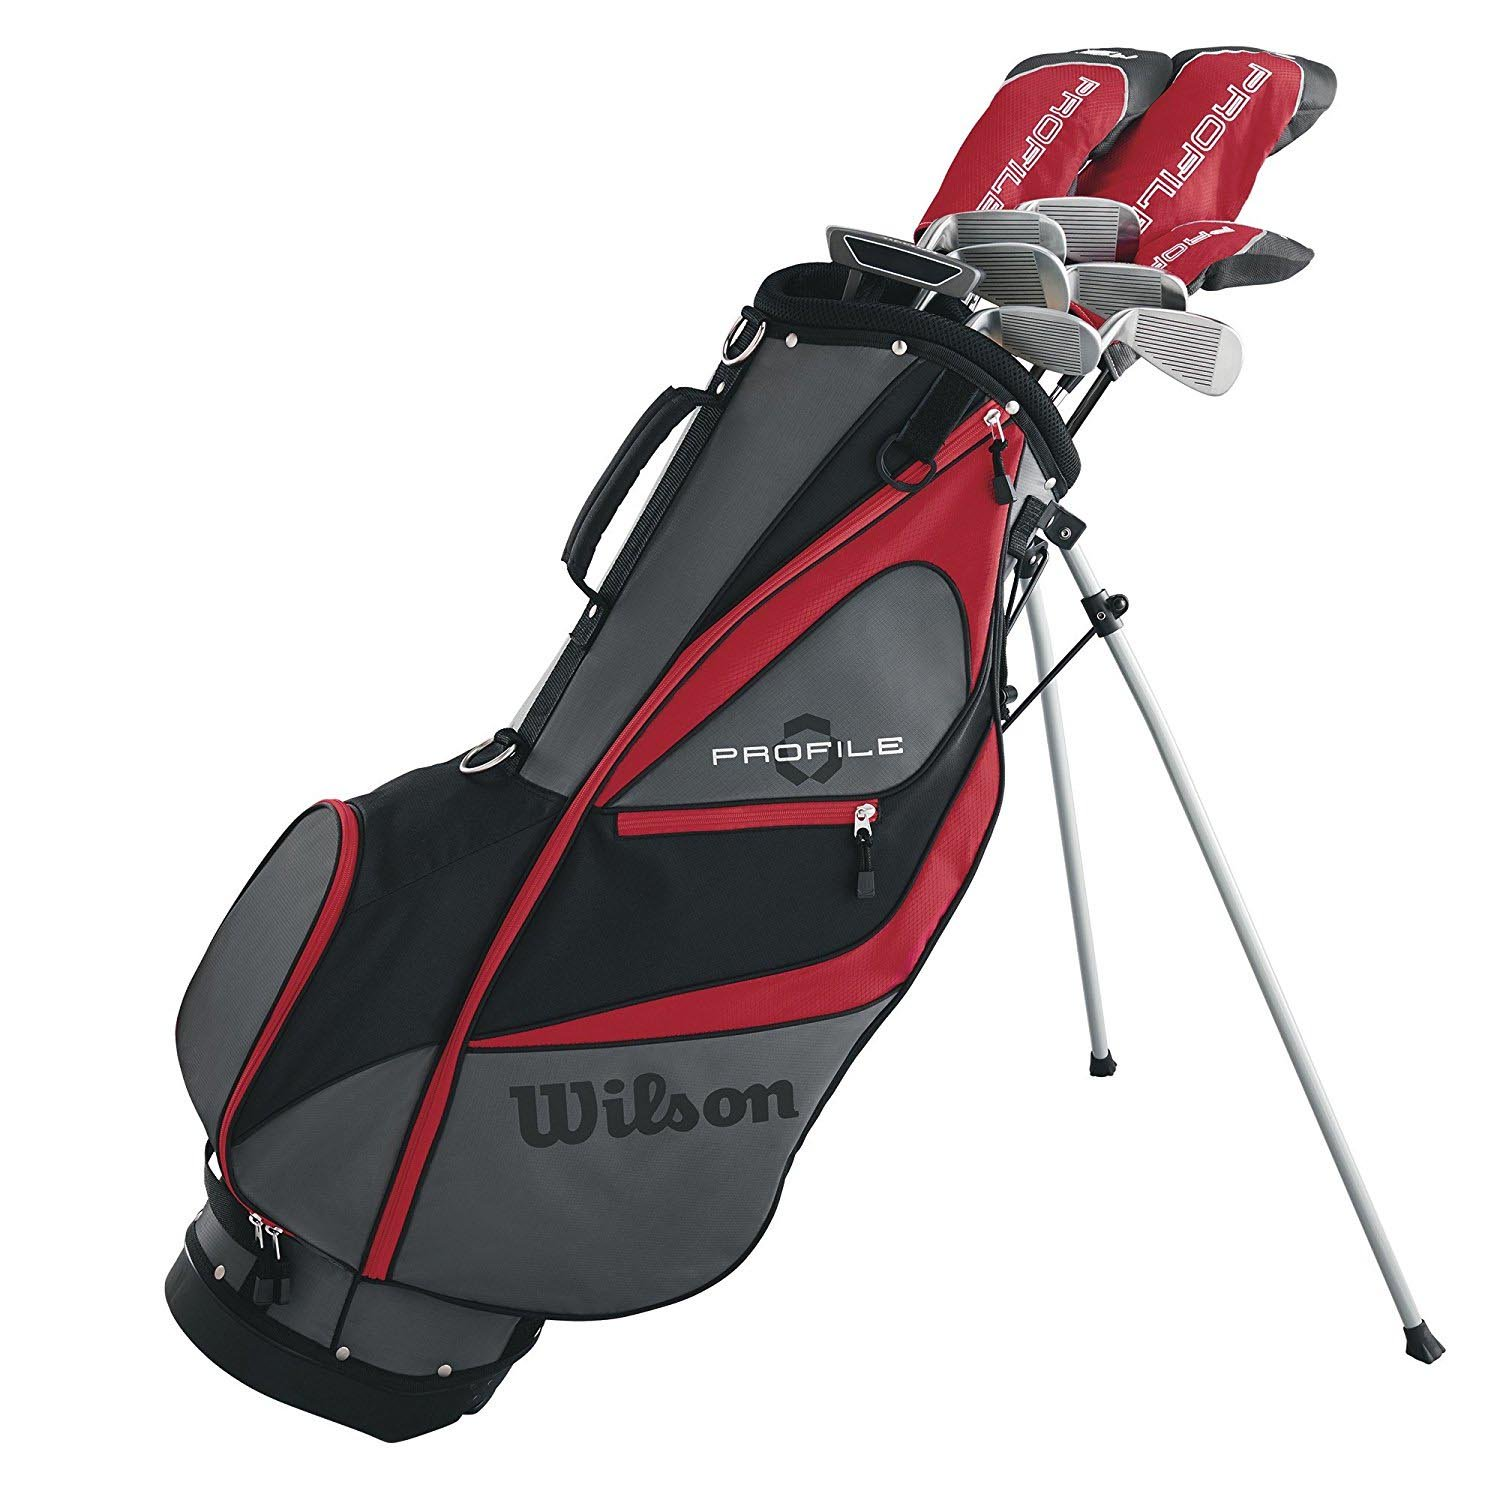 Wilson Profile XD Men's RH Flex Graphite Steel Long Golf Club Set and Stand Bag by Wilson